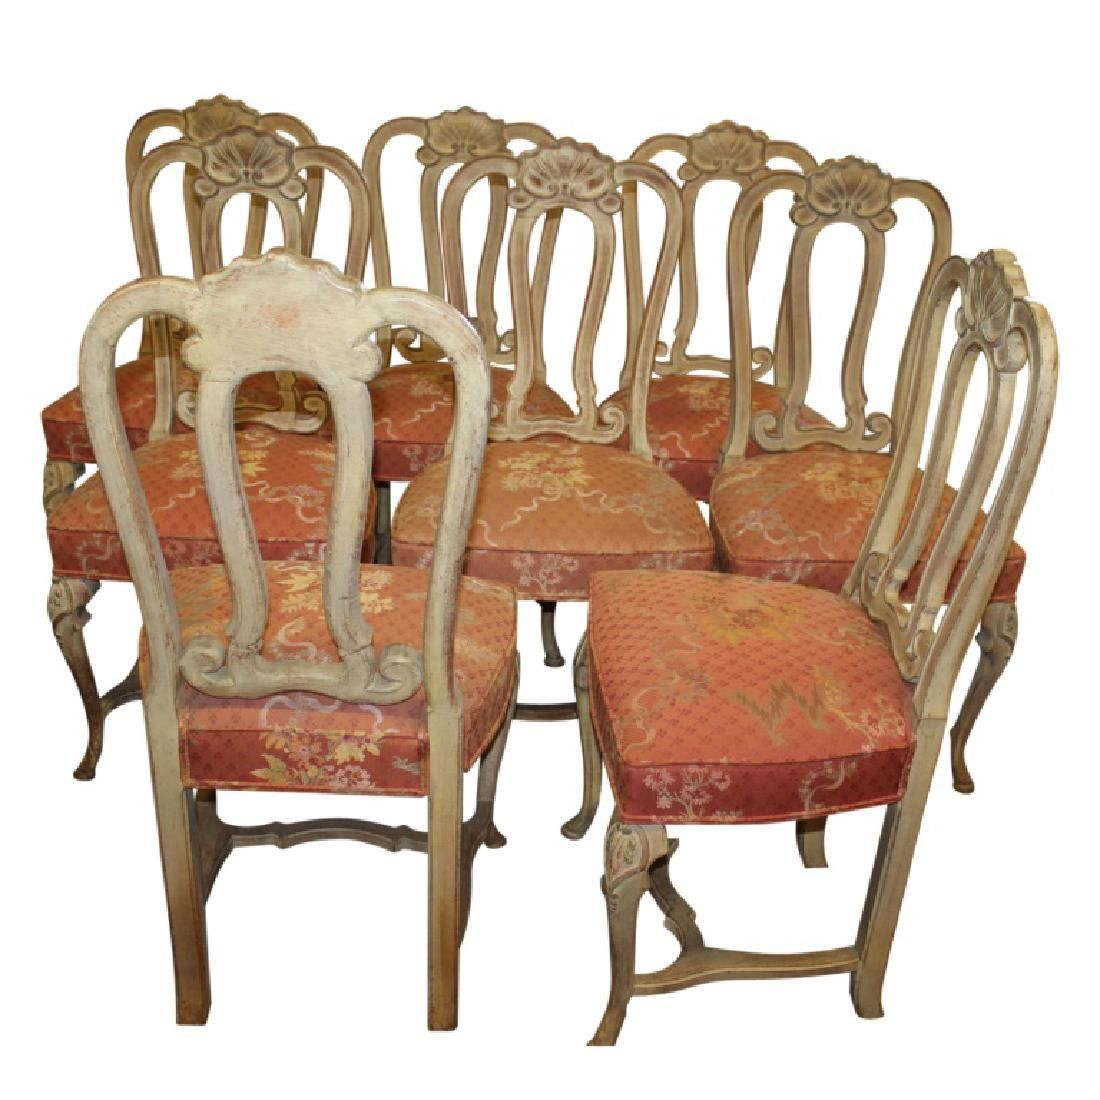 French Upholstered Dining Chairs - 8PCS